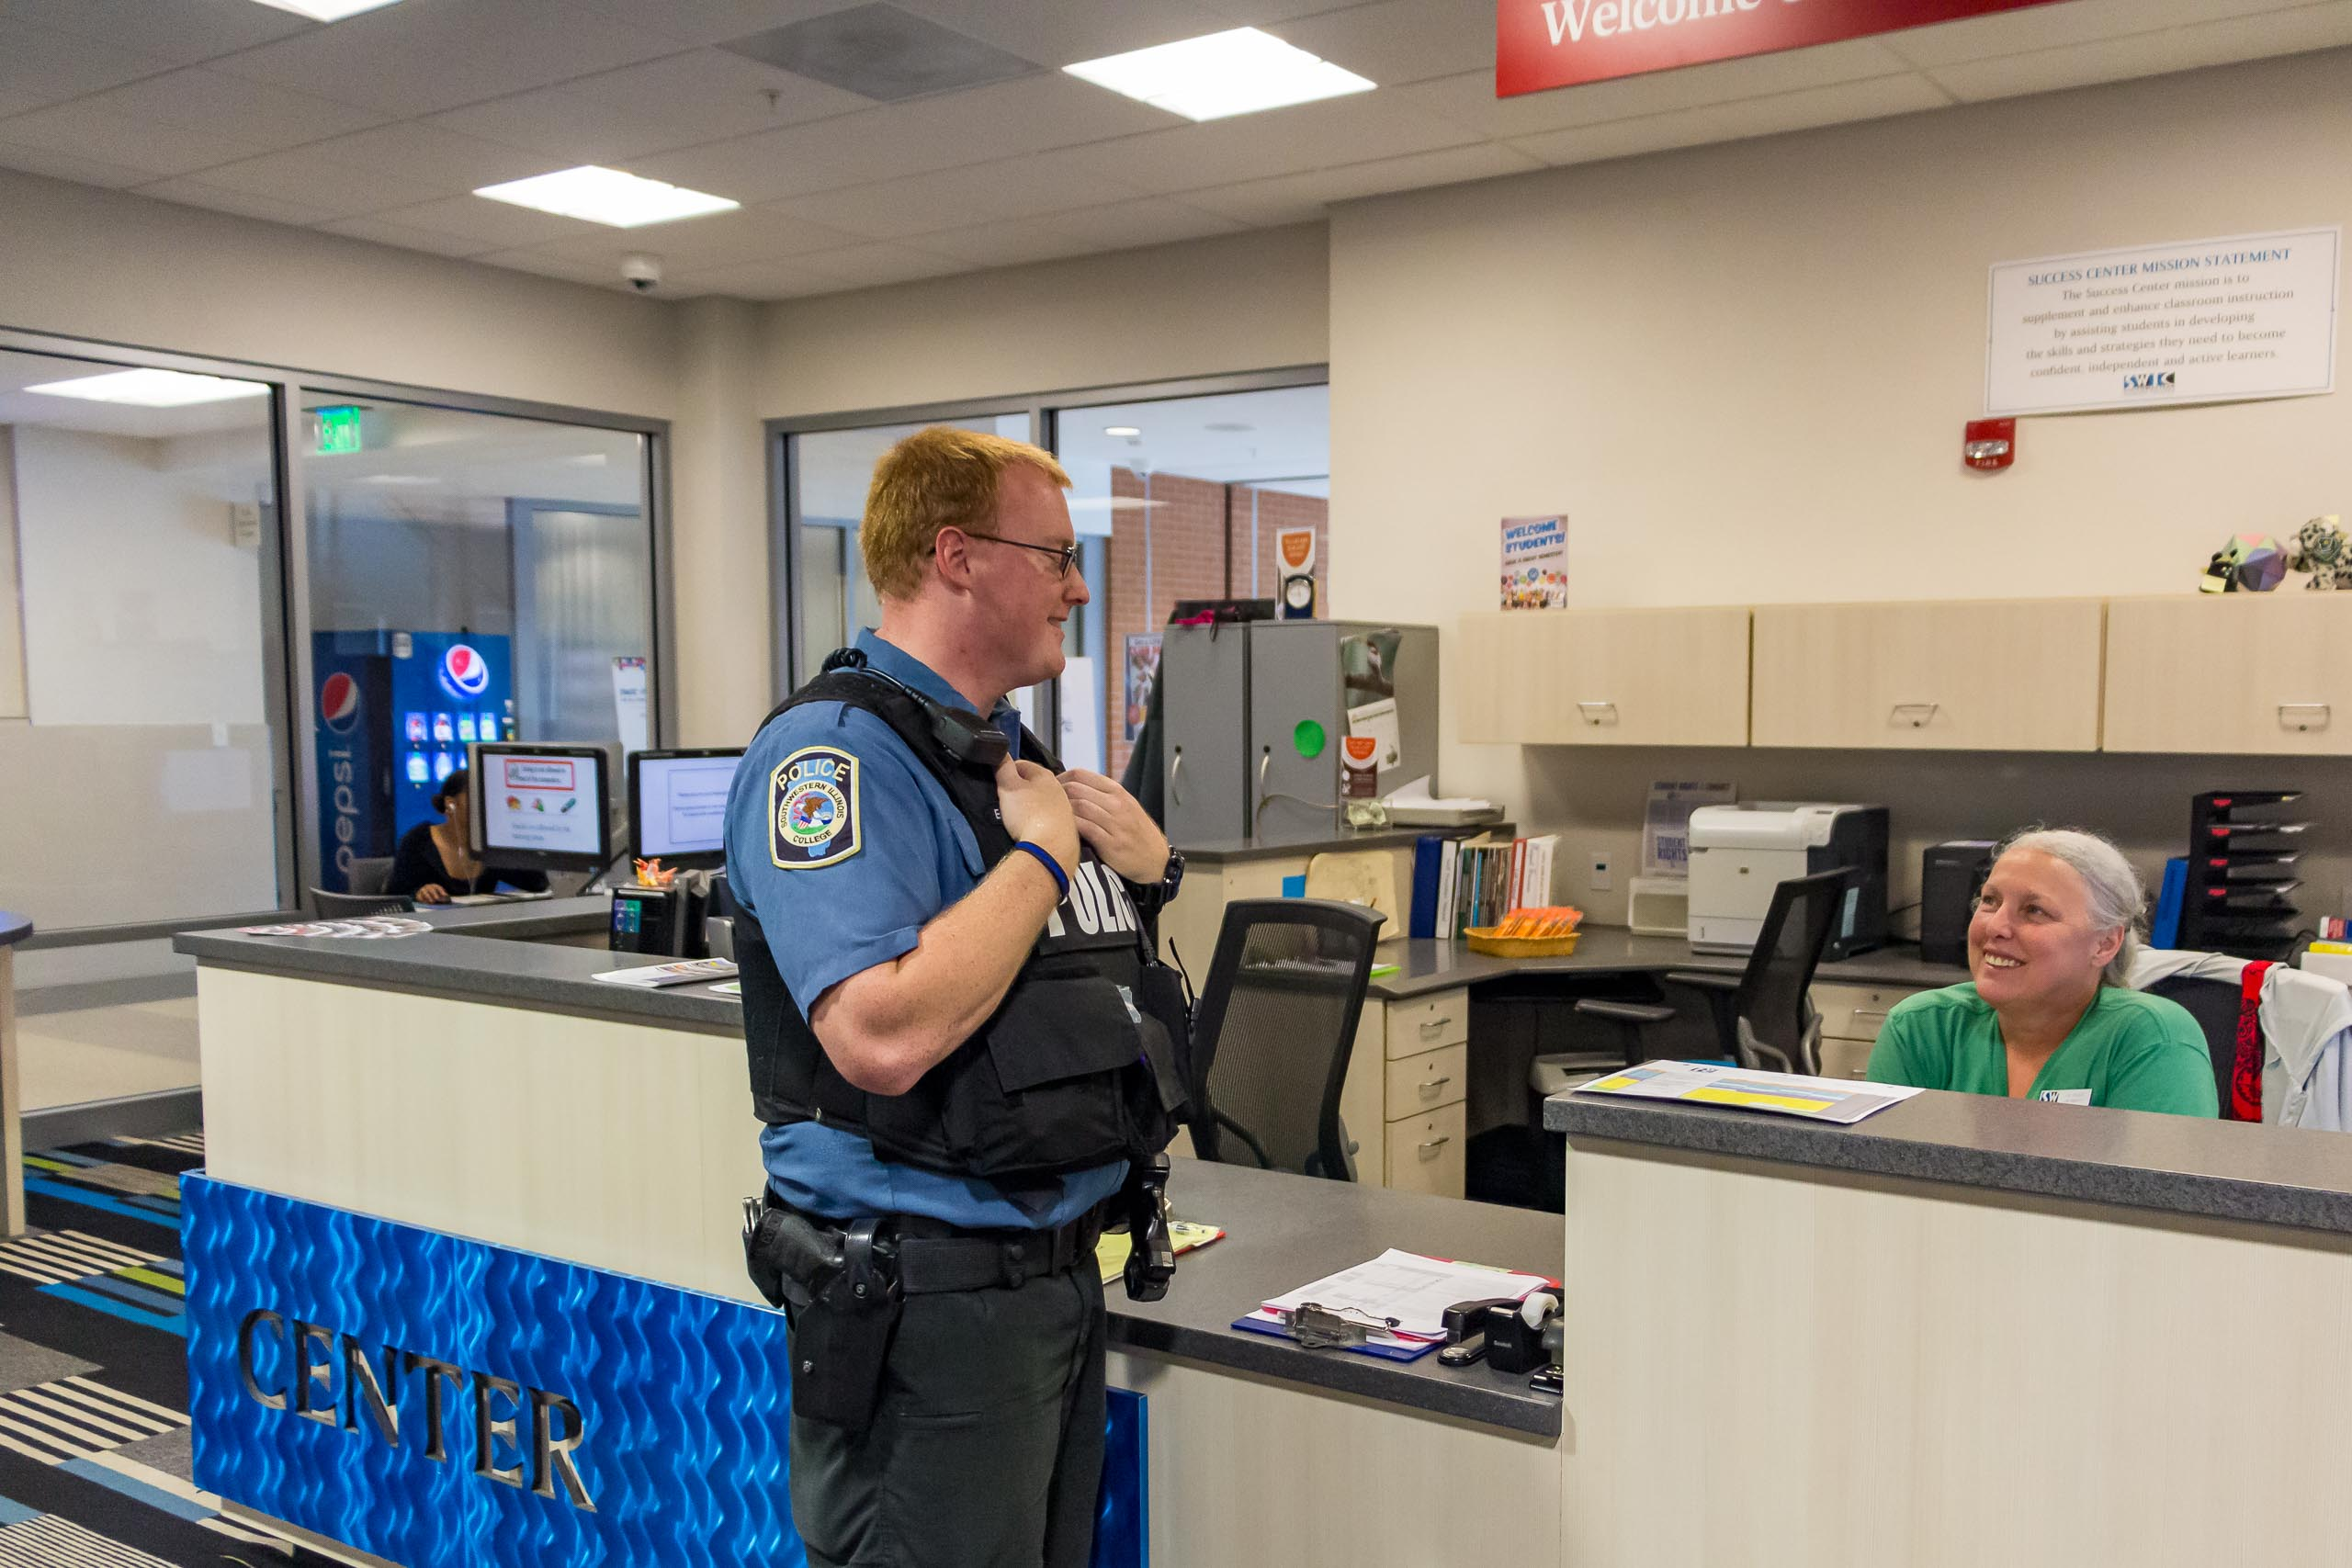 Officer speaking to Welcome Desk attendant in Success Center.